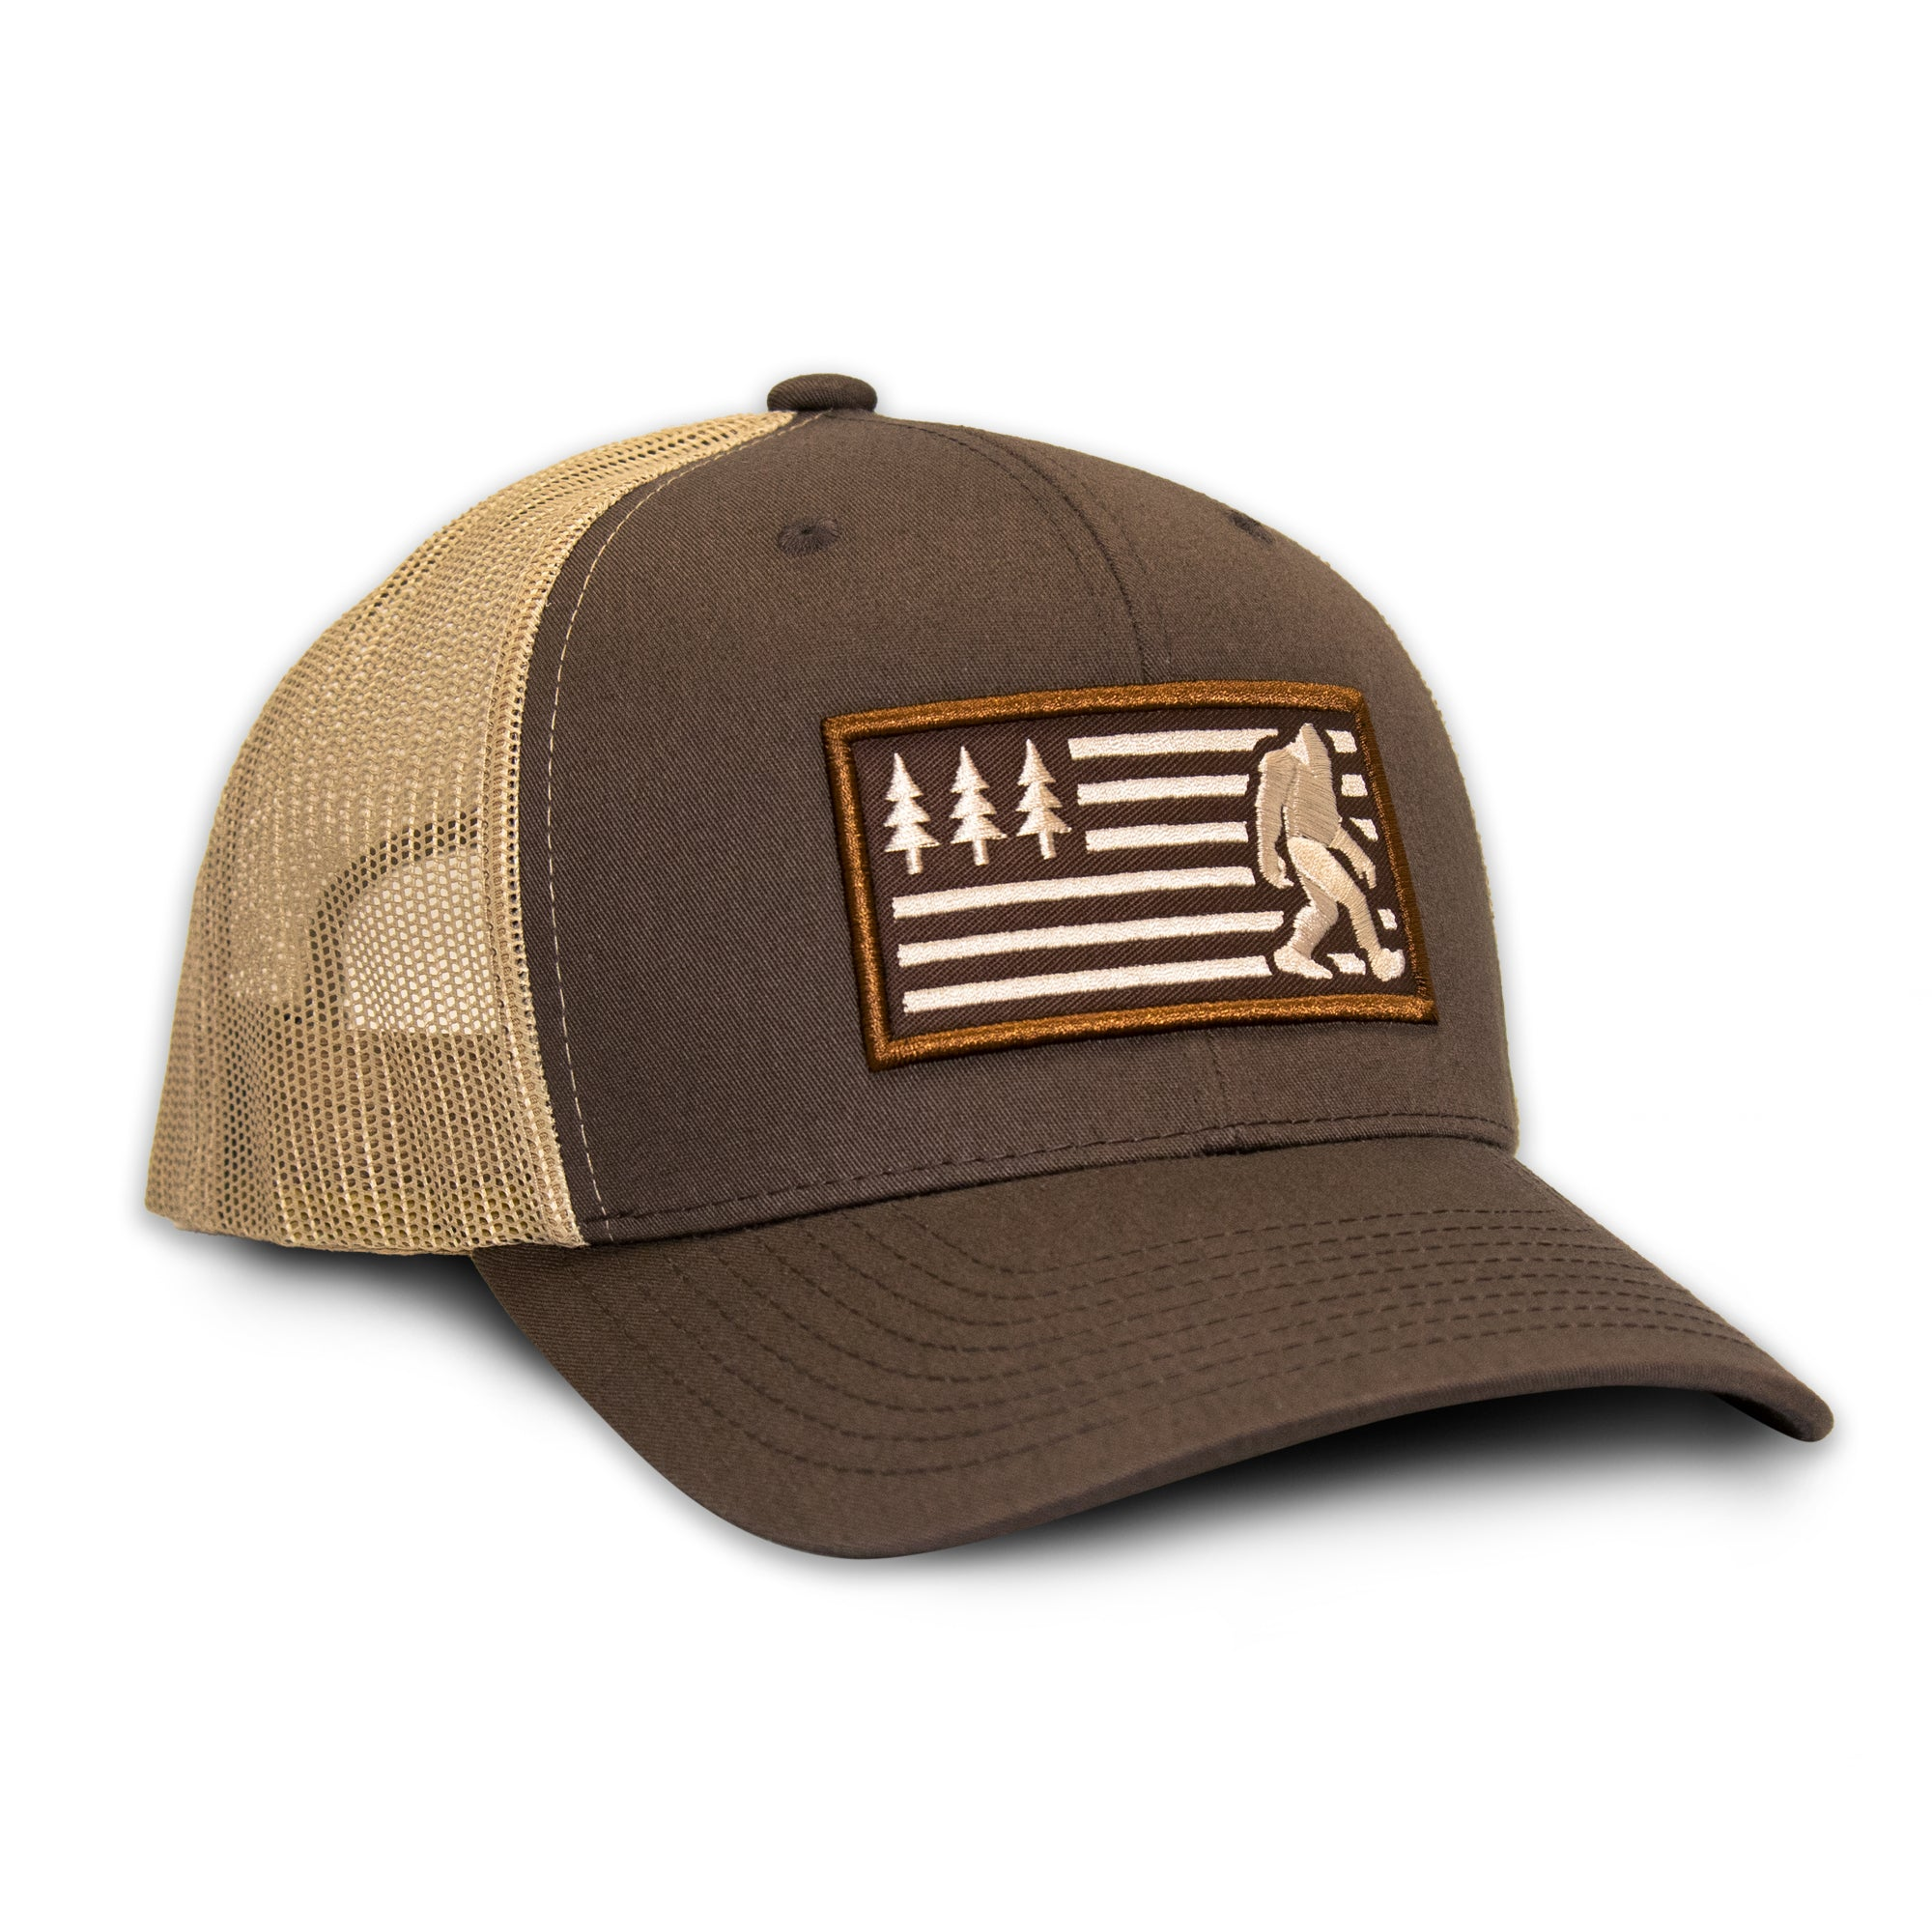 Legend Trucker Hat